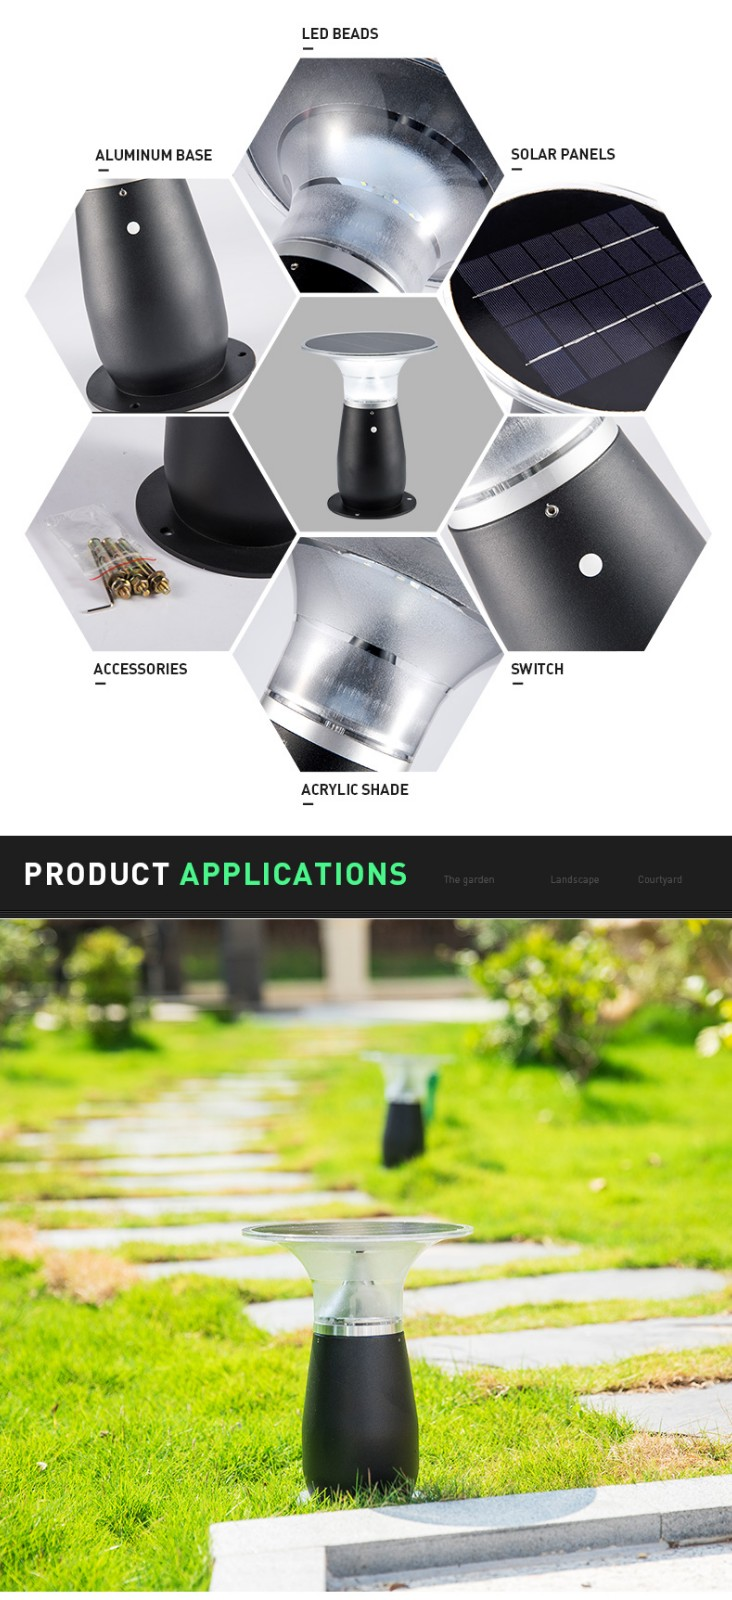 IP55 Waterproof Aluminum Wireless Outdoor Solar Bollard Light-5